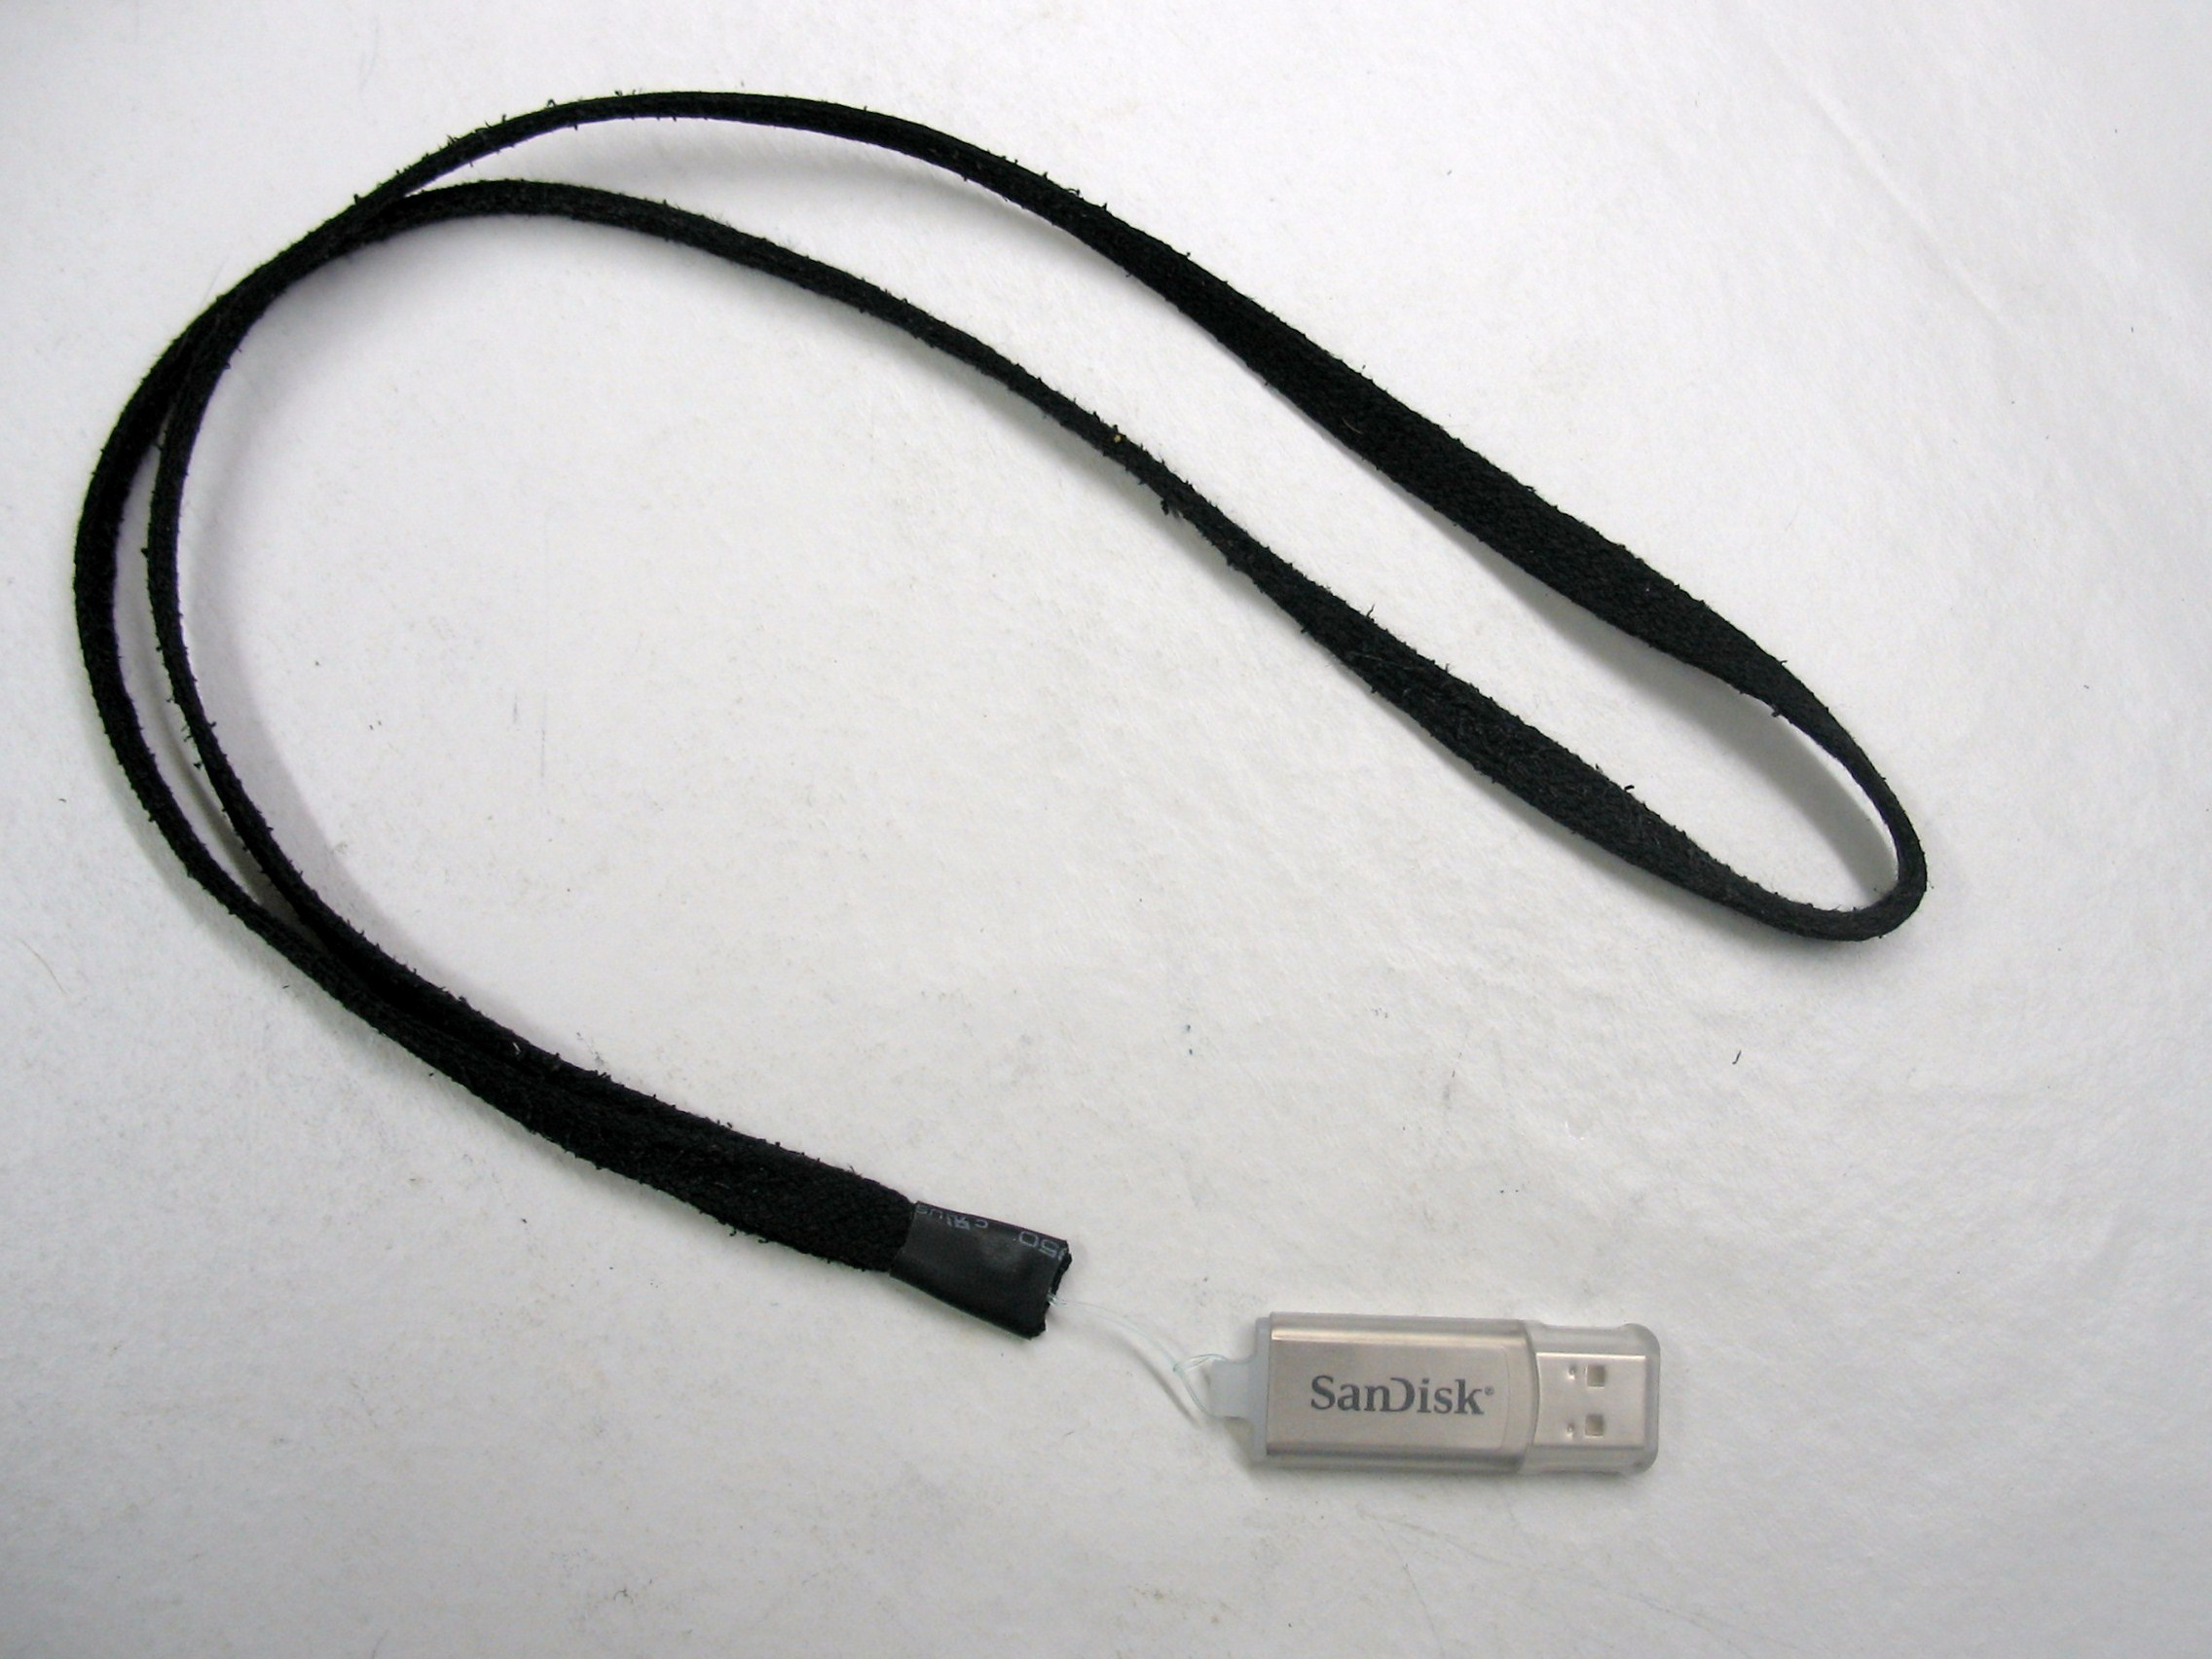 DIY Lanyard for USB Flash Drives